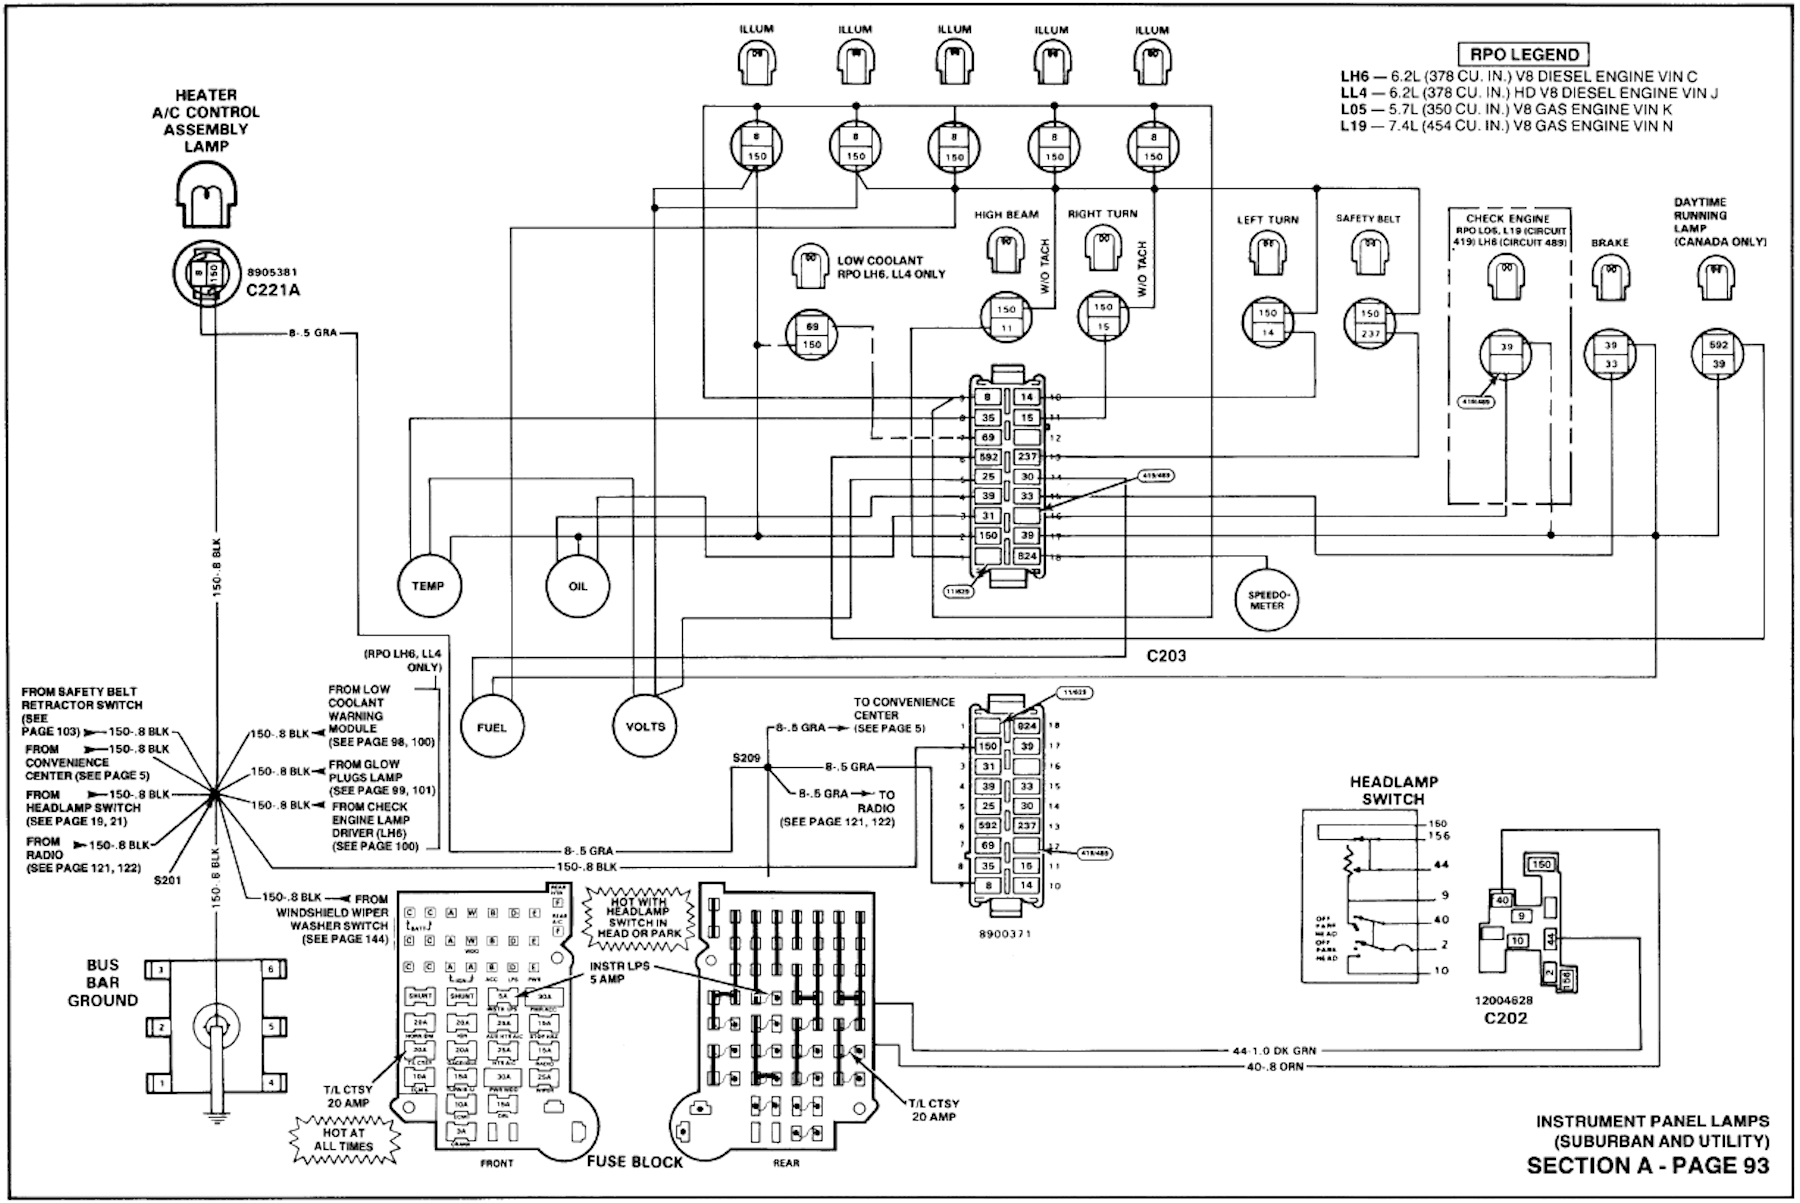 hight resolution of 1990 suburban 2500 wiring diagram wiring diagram info 1990 suburban 2500 wiring diagram